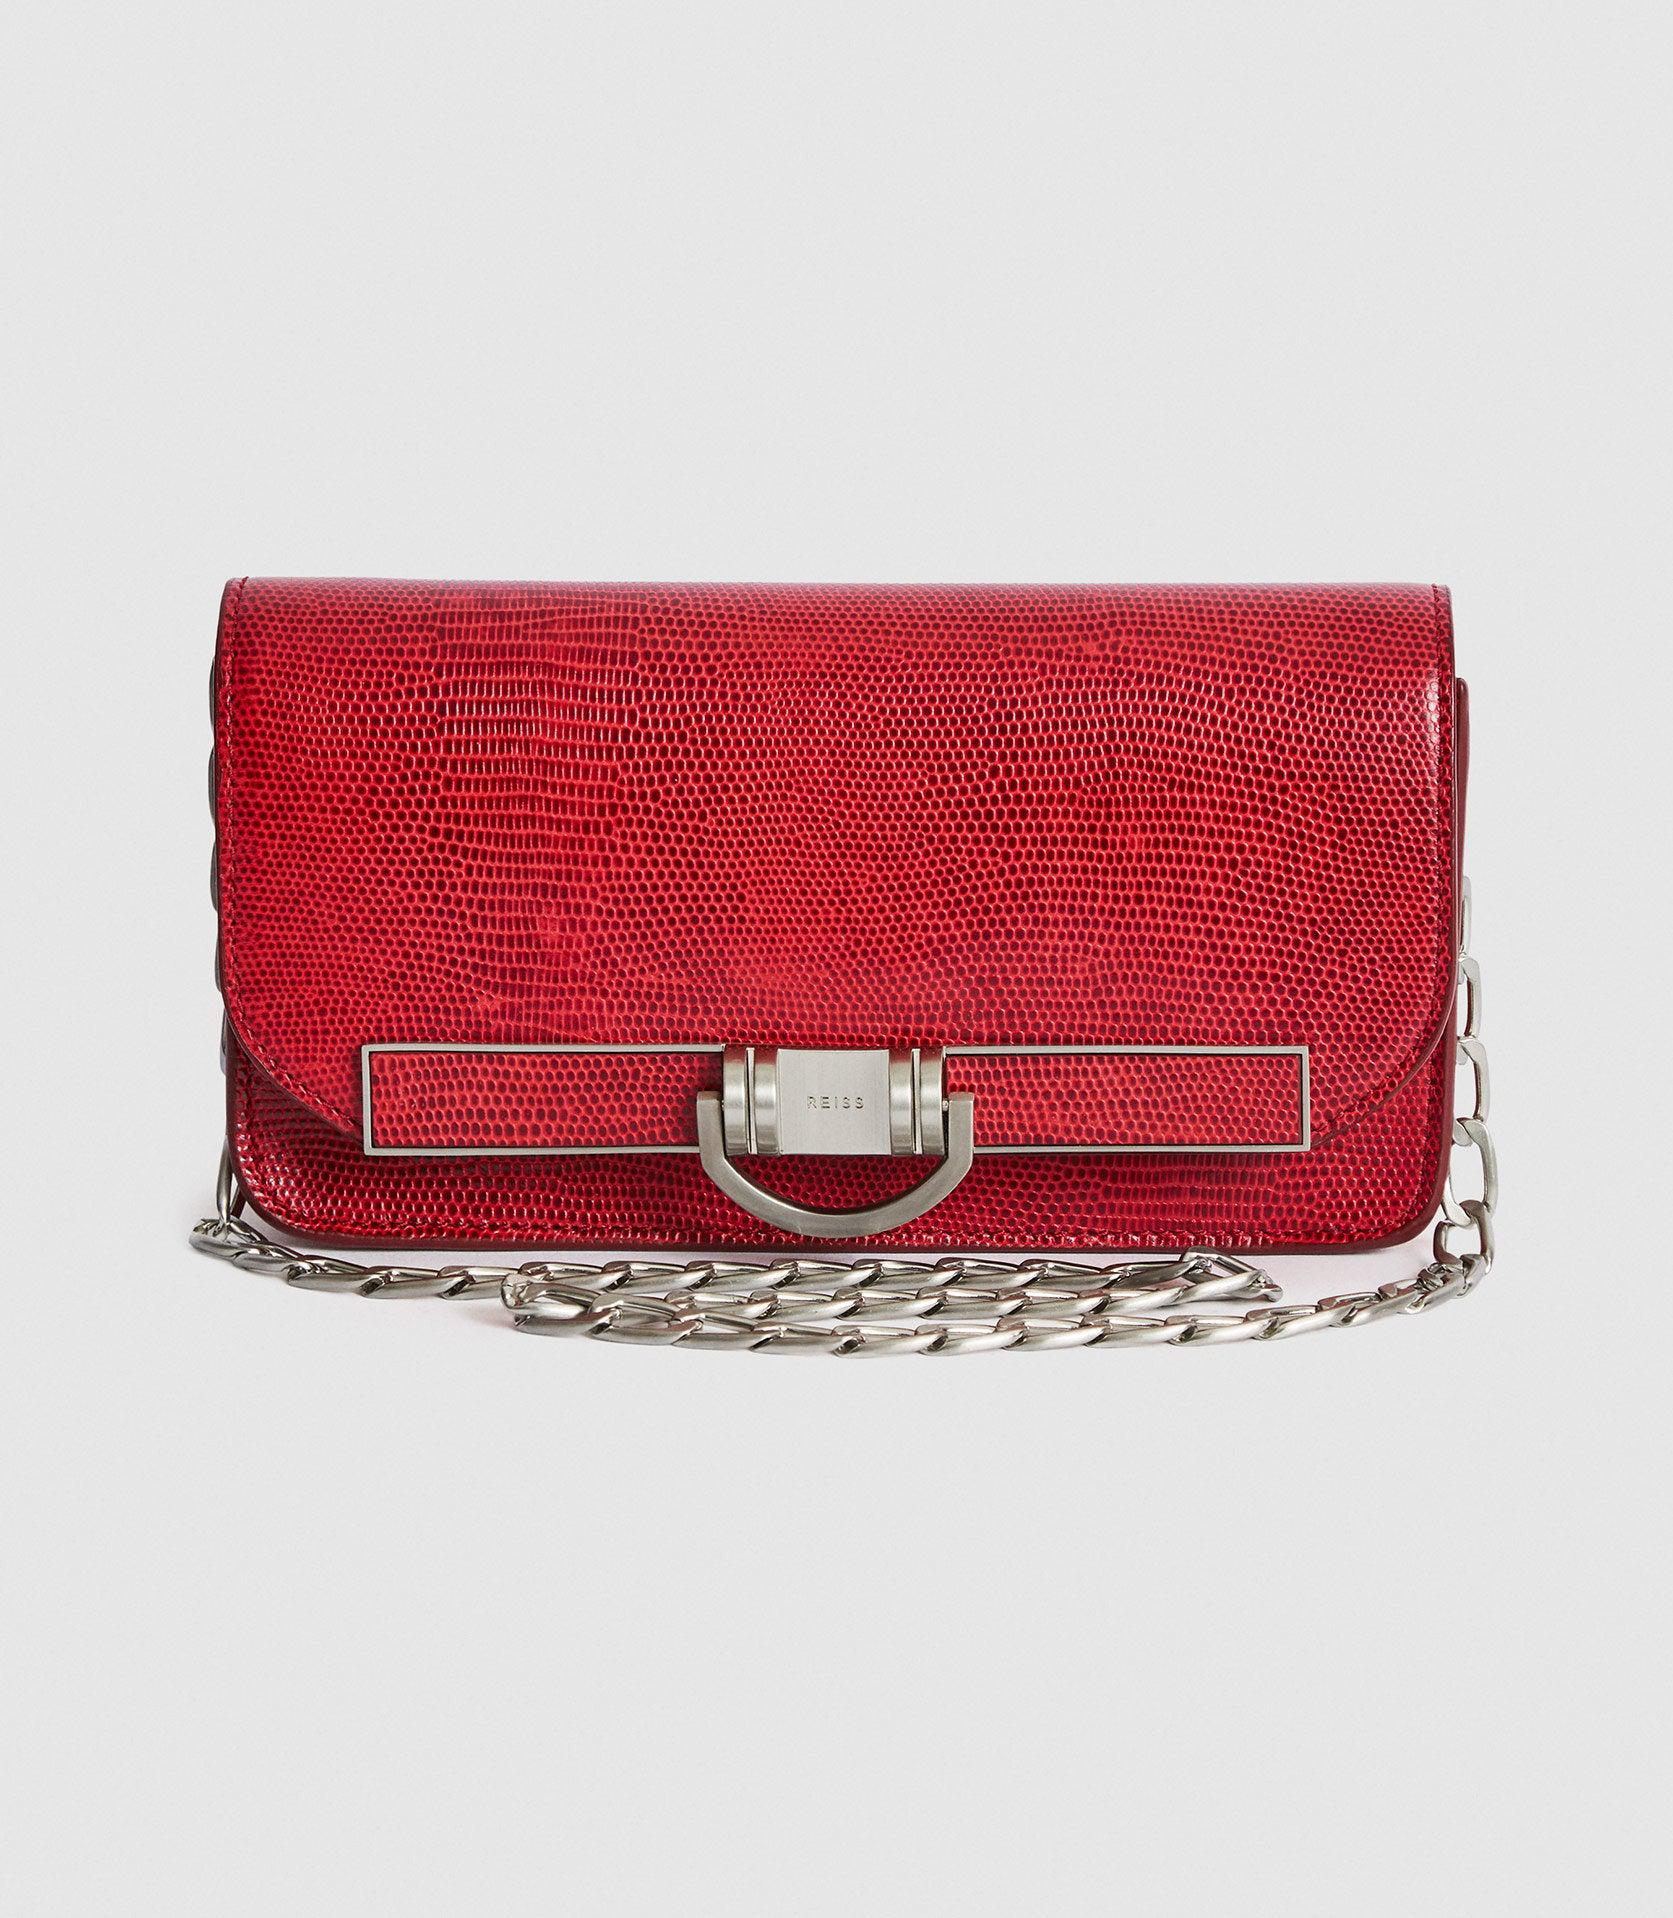 LEXI SMALL - SMALL LEATHER BAGUETTE BAG